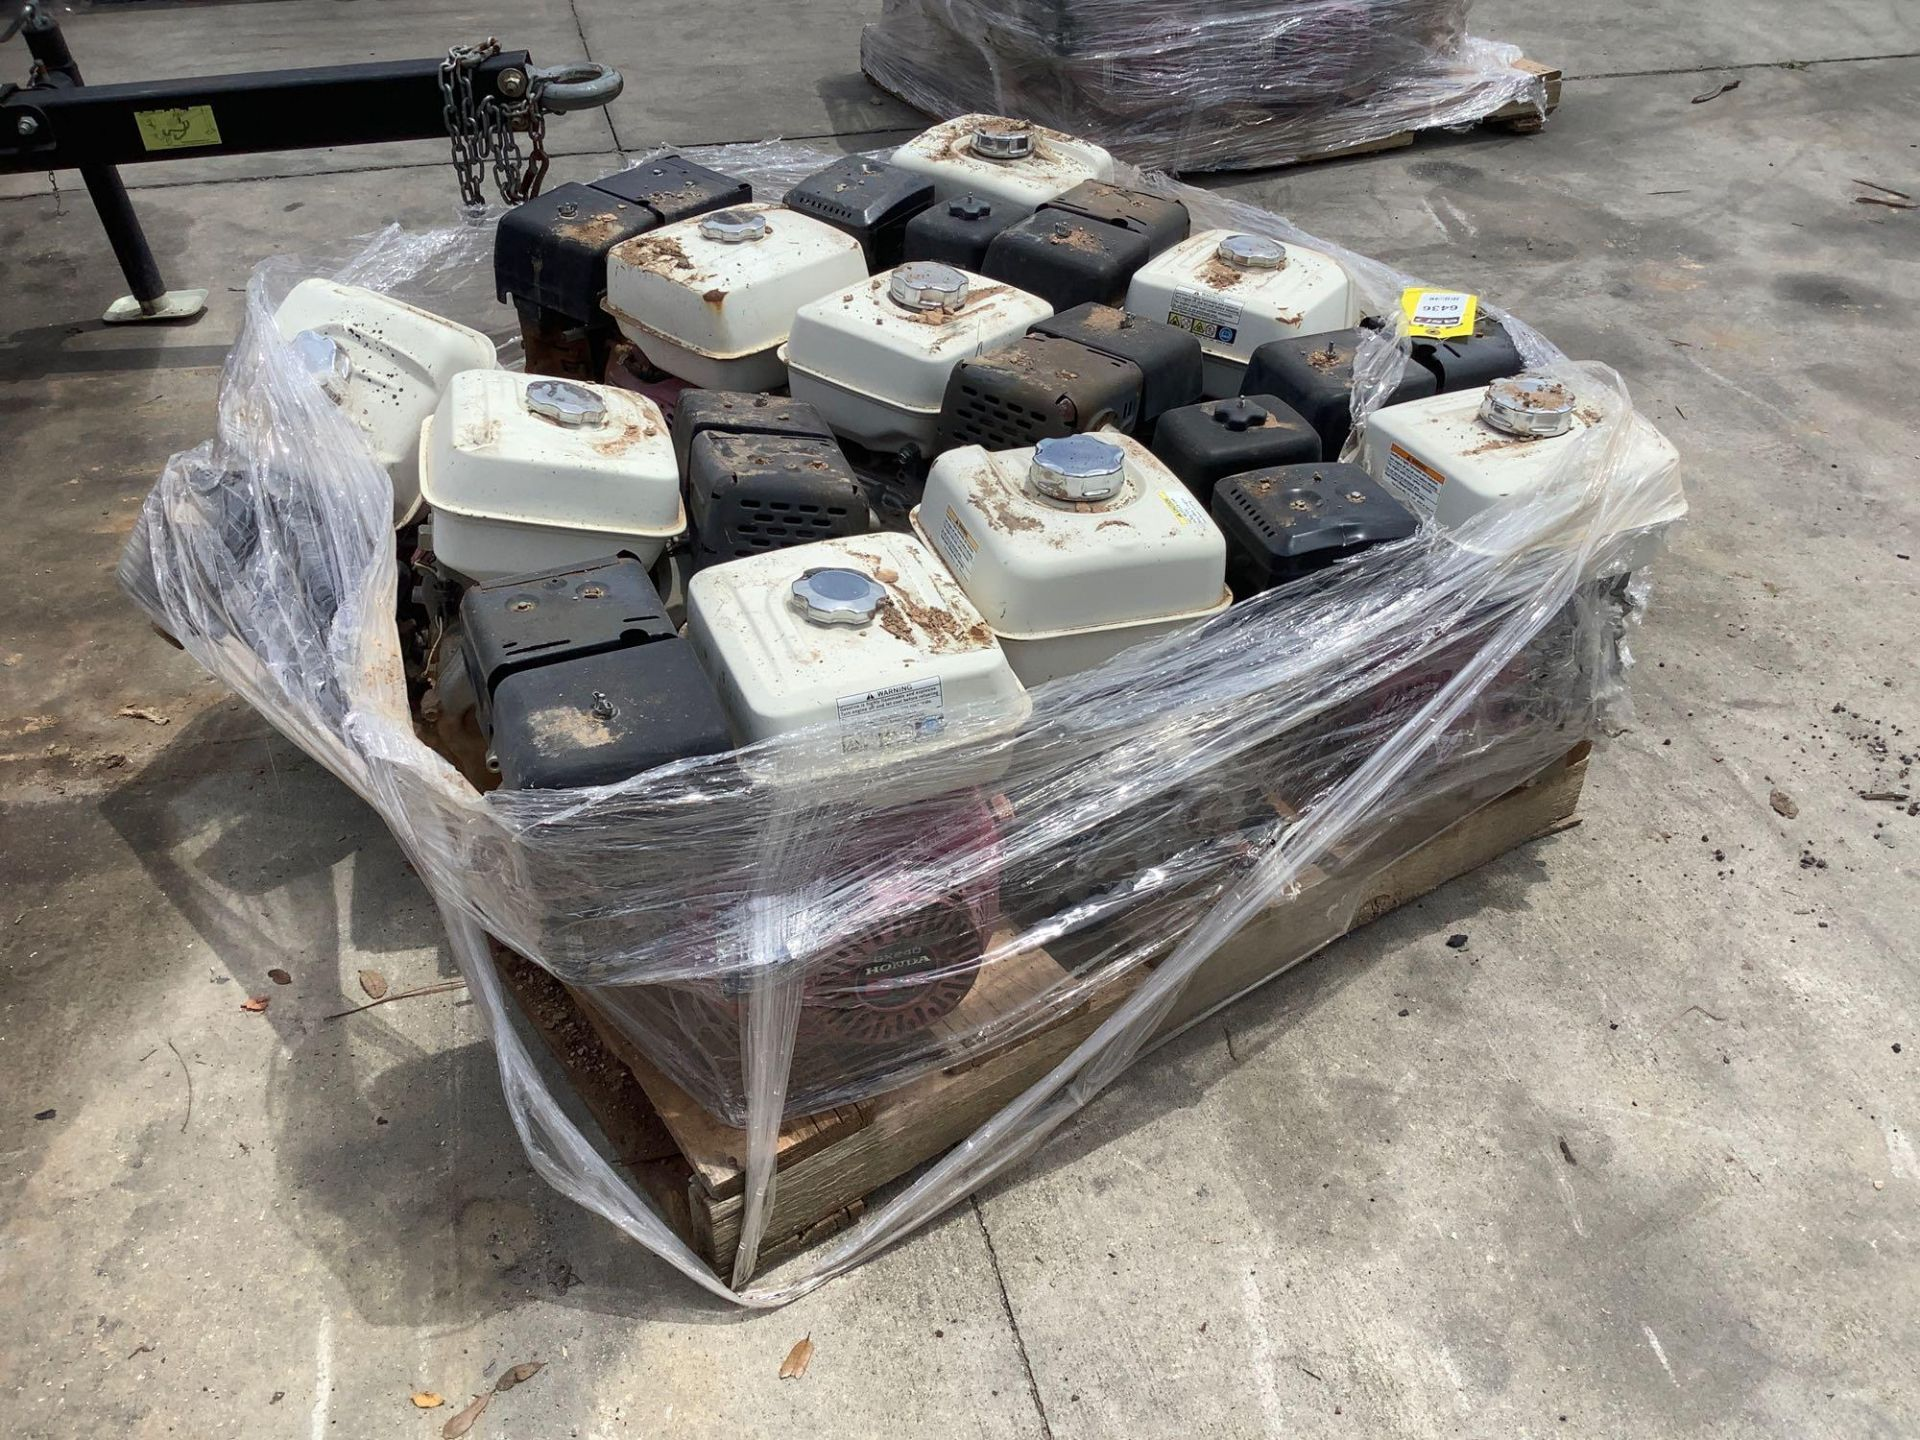 PALLET OF GAS HONDA GX 240 ENGINE , 8 HP, REMOVED FROM WORK SITE DOES RUN ALTHOUGH UNABLE TO GUARANT - Image 3 of 4